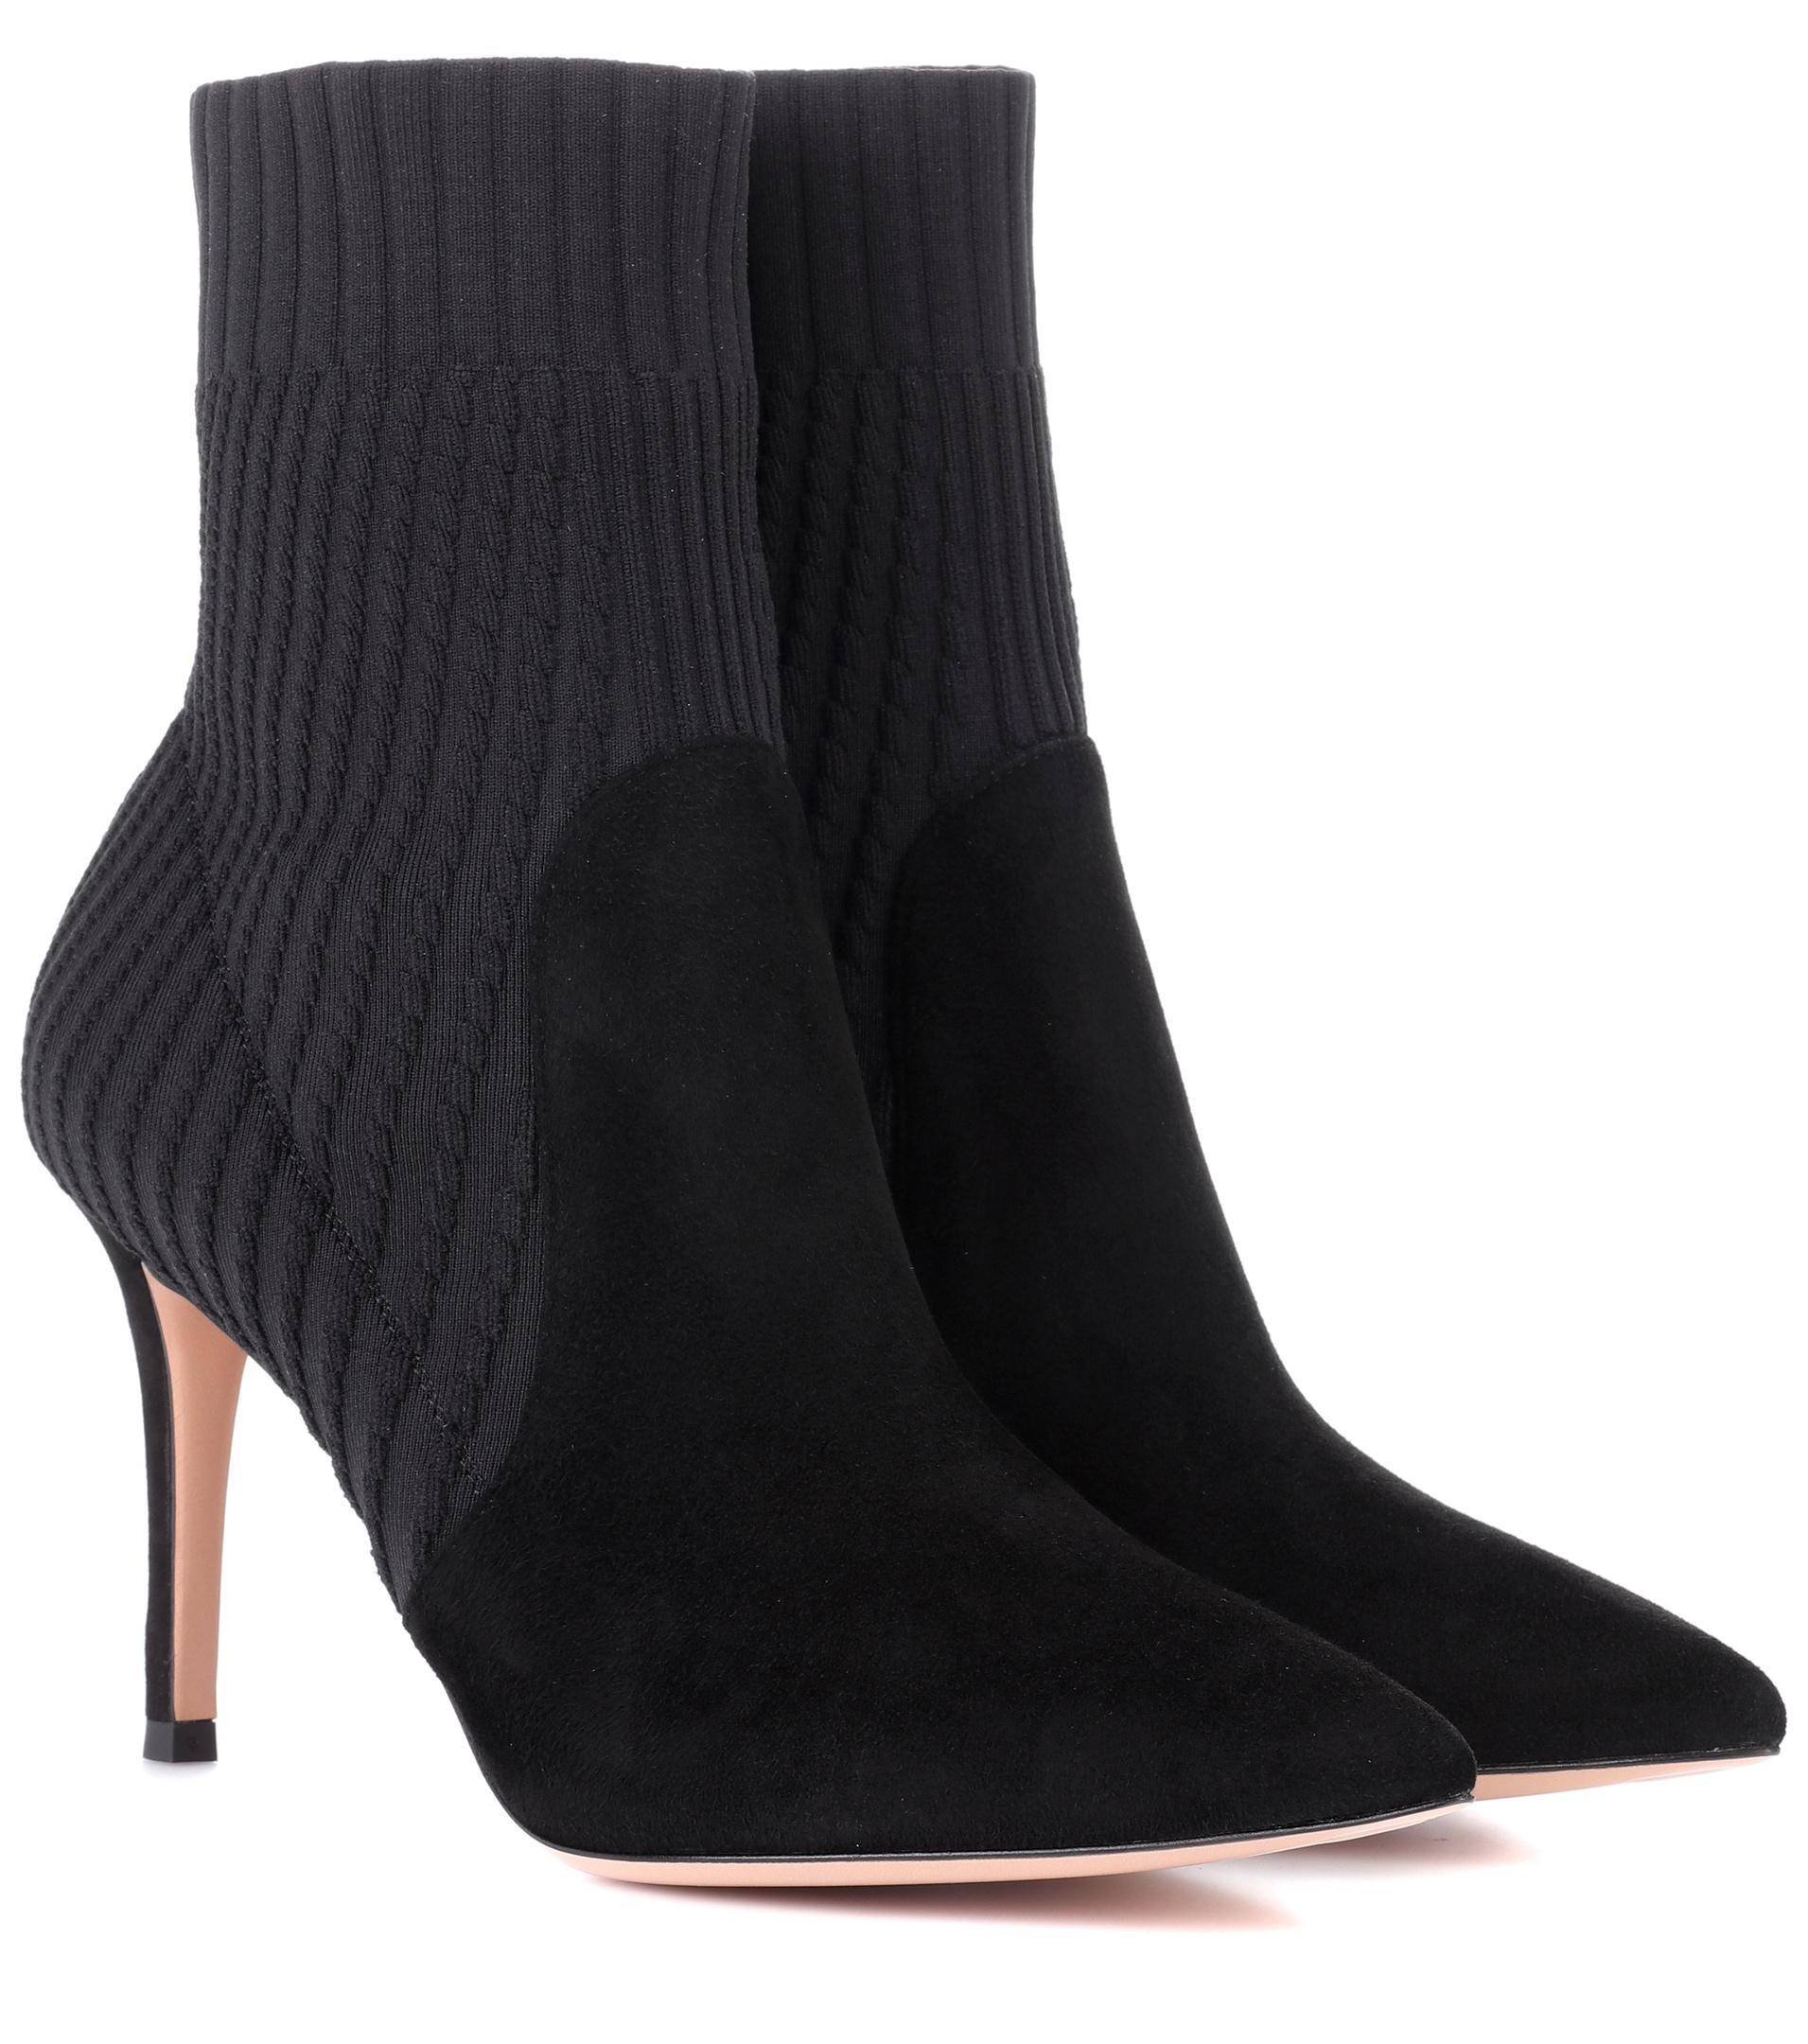 Katie 105 Black Knit Booties Gianvito Rossi Buy Cheap Many Kinds Of Free Shipping Cheap Price Cheap Sale For Cheap Kf6oqbtbEb